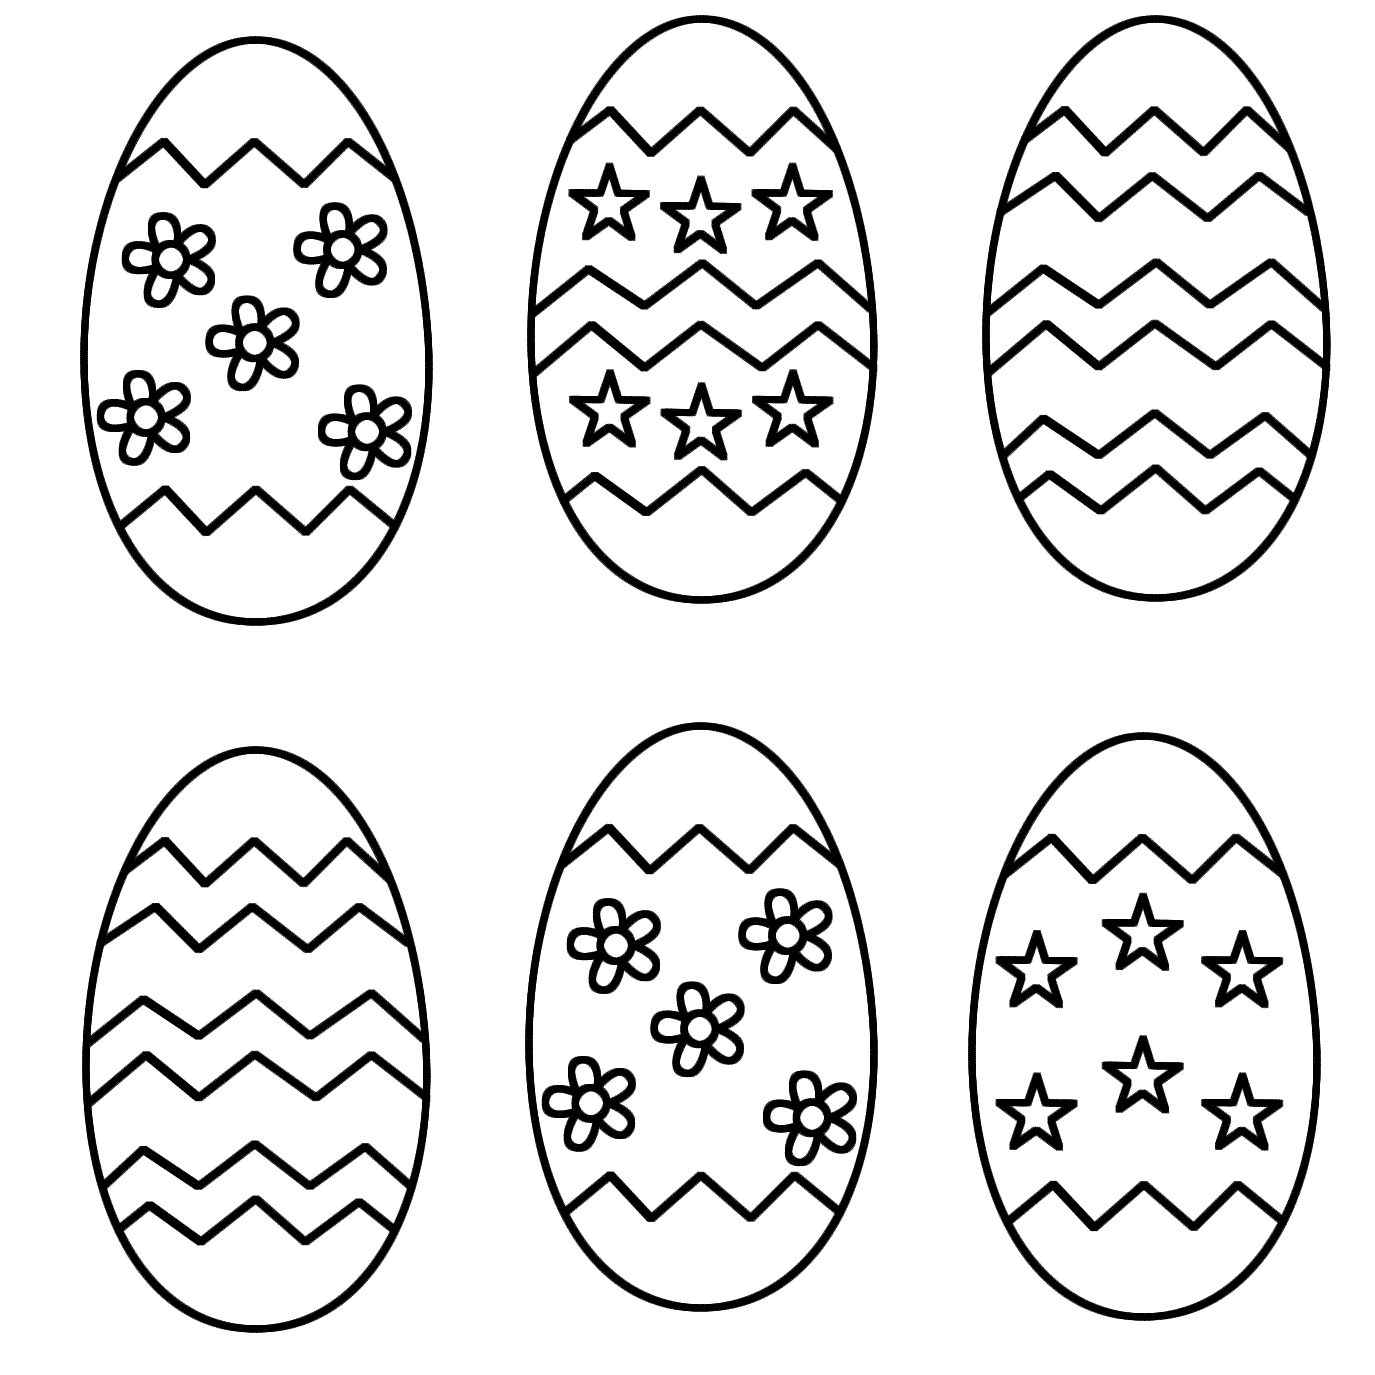 Easter Coloring Pages for Childrens Printable for Free Printable Of Easter Basket Coloring Pages to Print Gallery